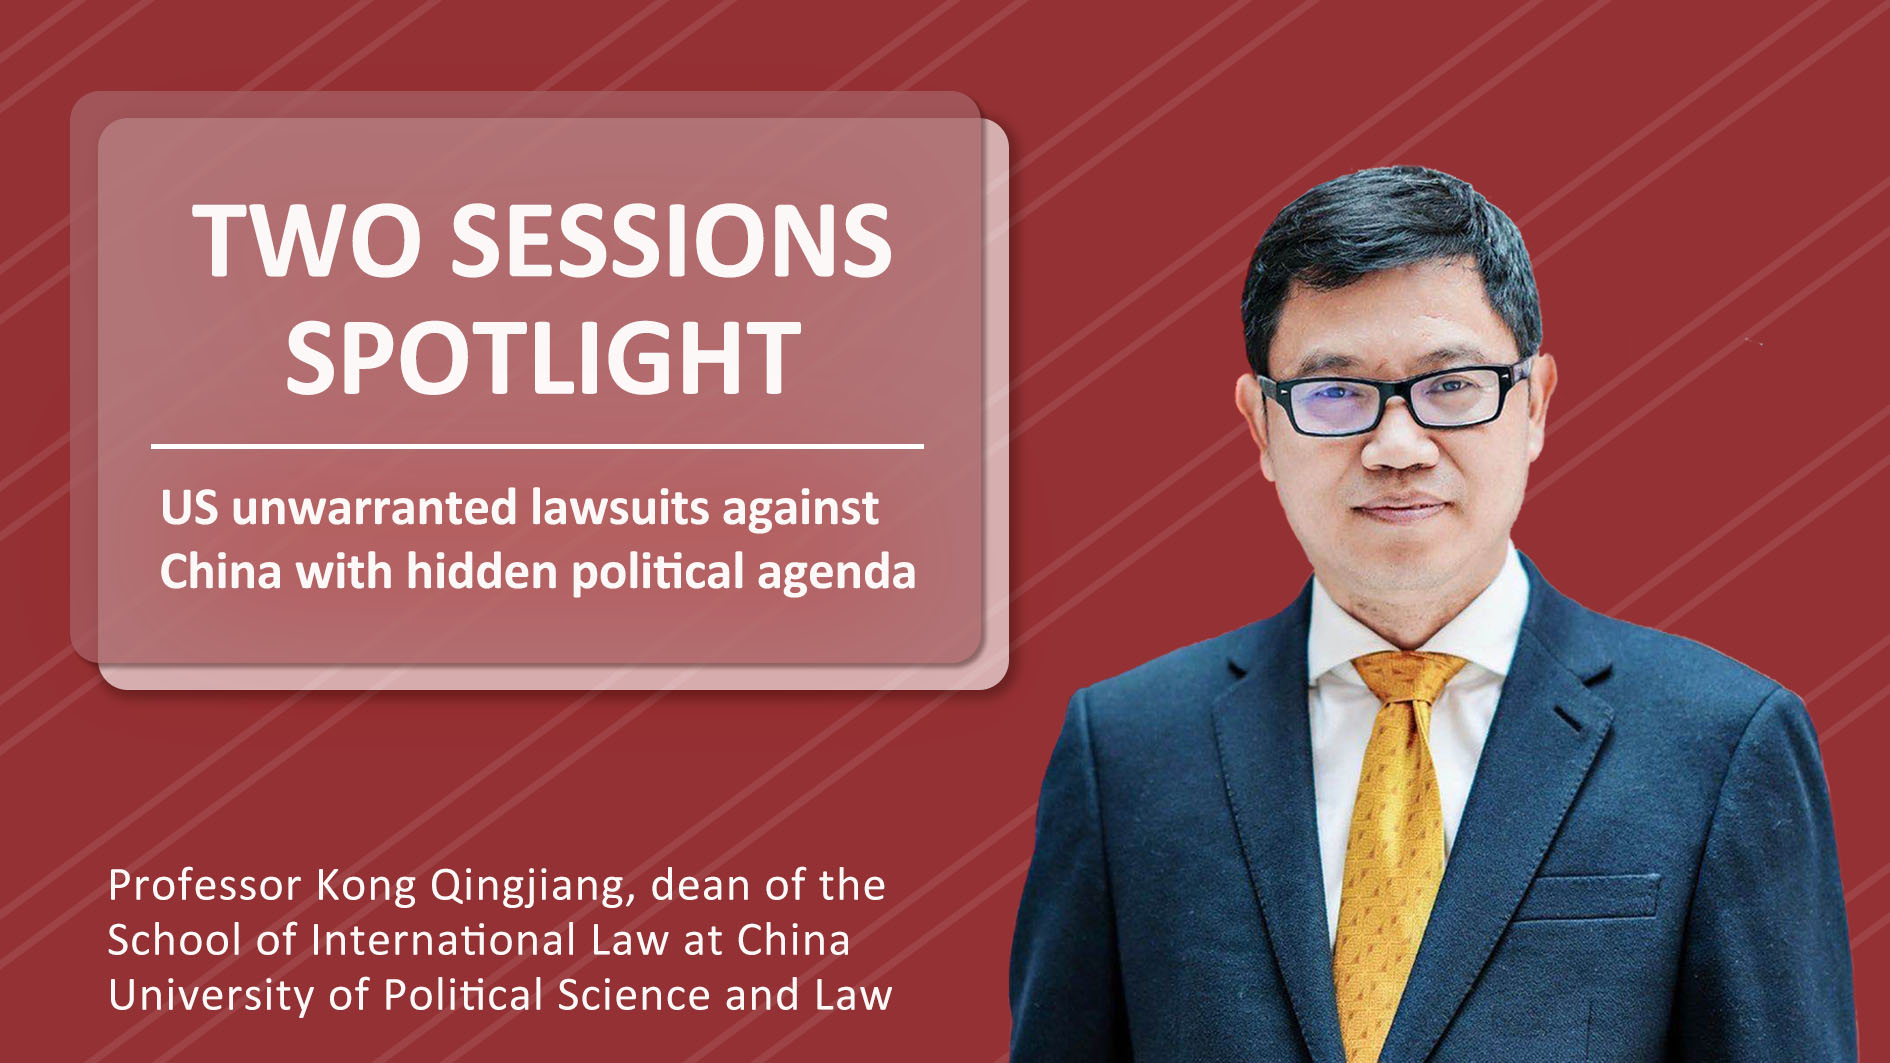 Two Sessions Spotlight: Unwarranted US lawsuits against China have hidden political agenda